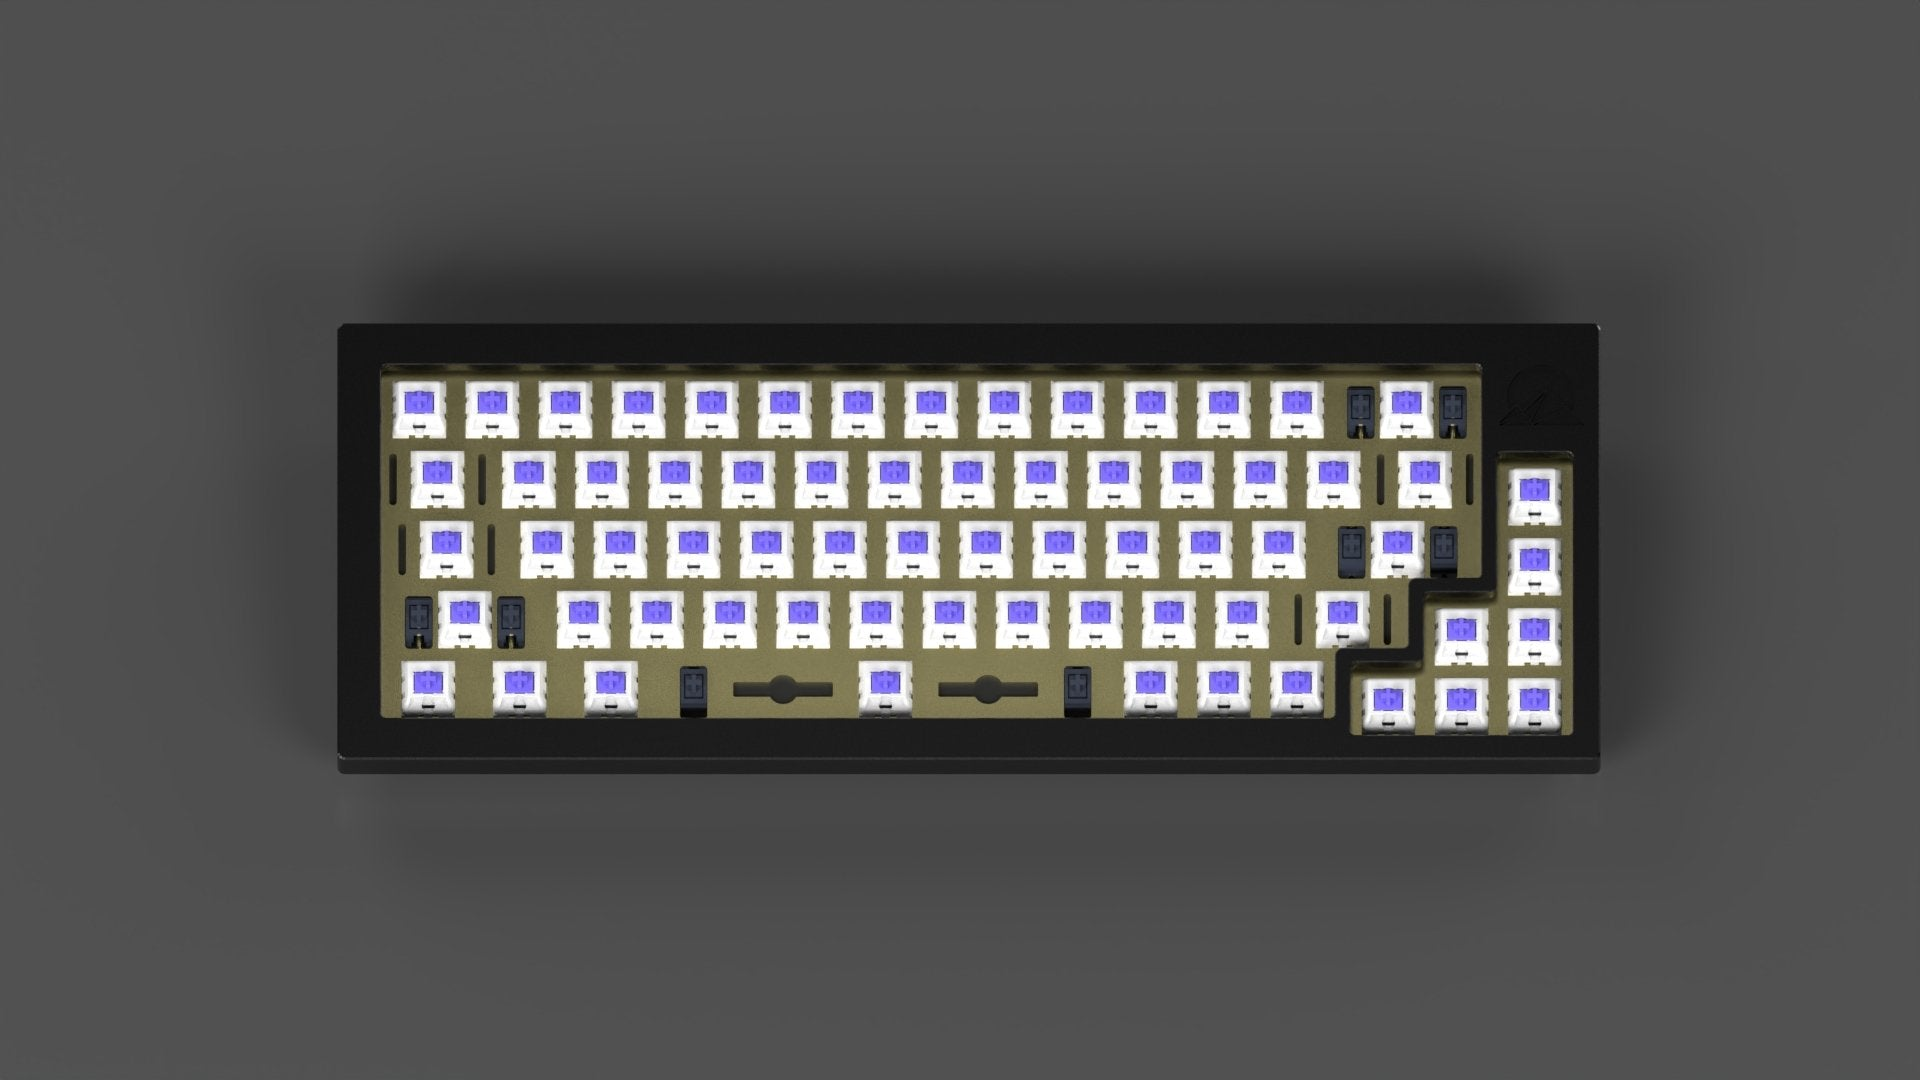 Alpine65 Keyboard - Bitmap Studio